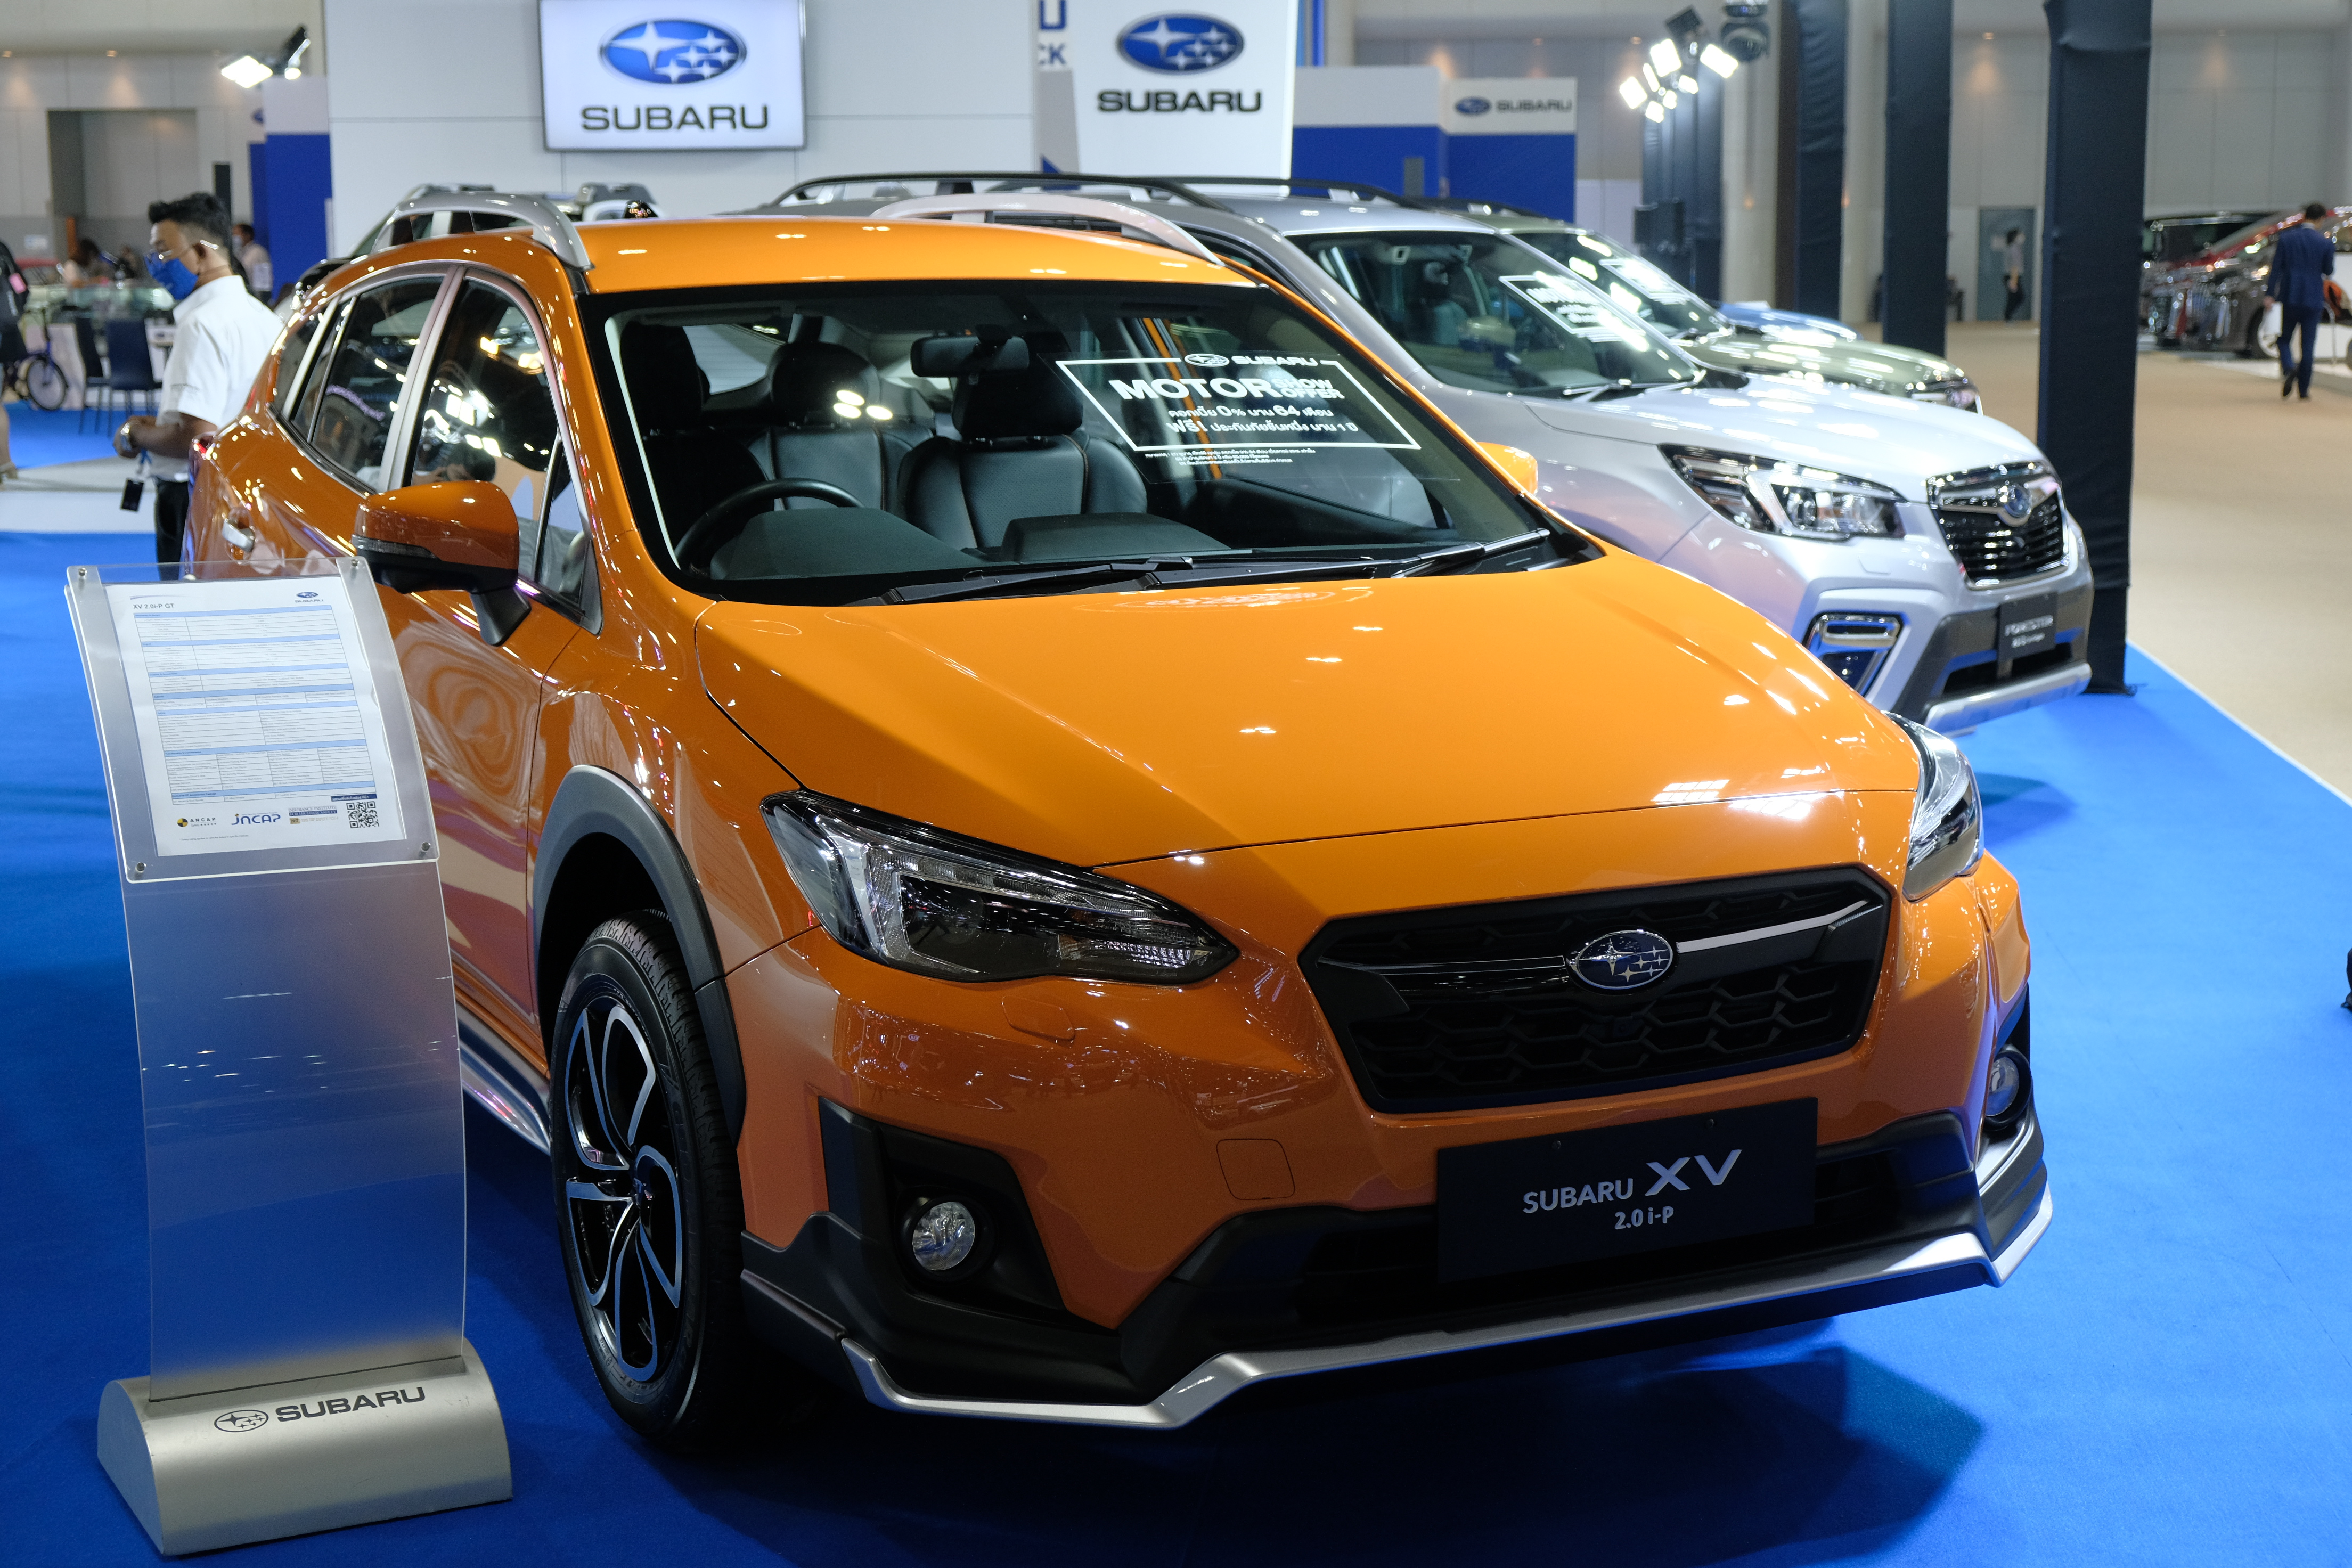 The All-New OUTBACK ปรากฏตัวครั้งแรกในอาเซียน